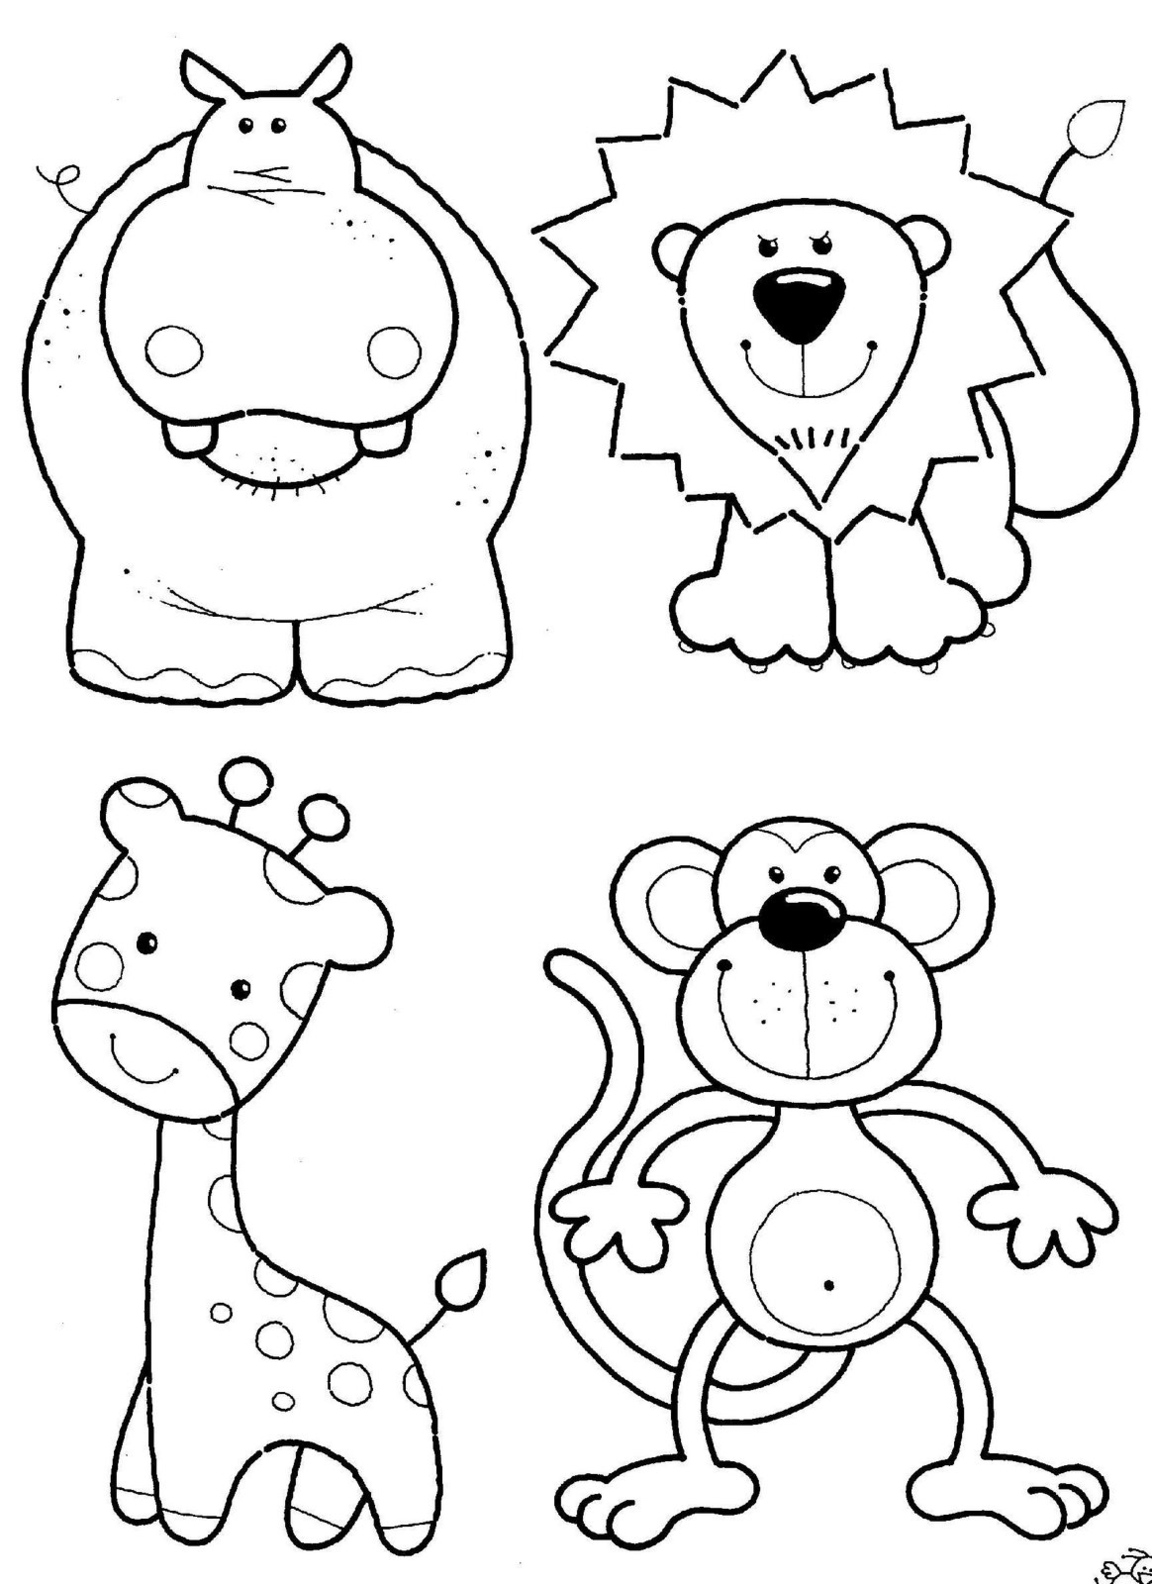 animal coloring sheets get this cute baby animal coloring pages to print y21ma sheets animal coloring